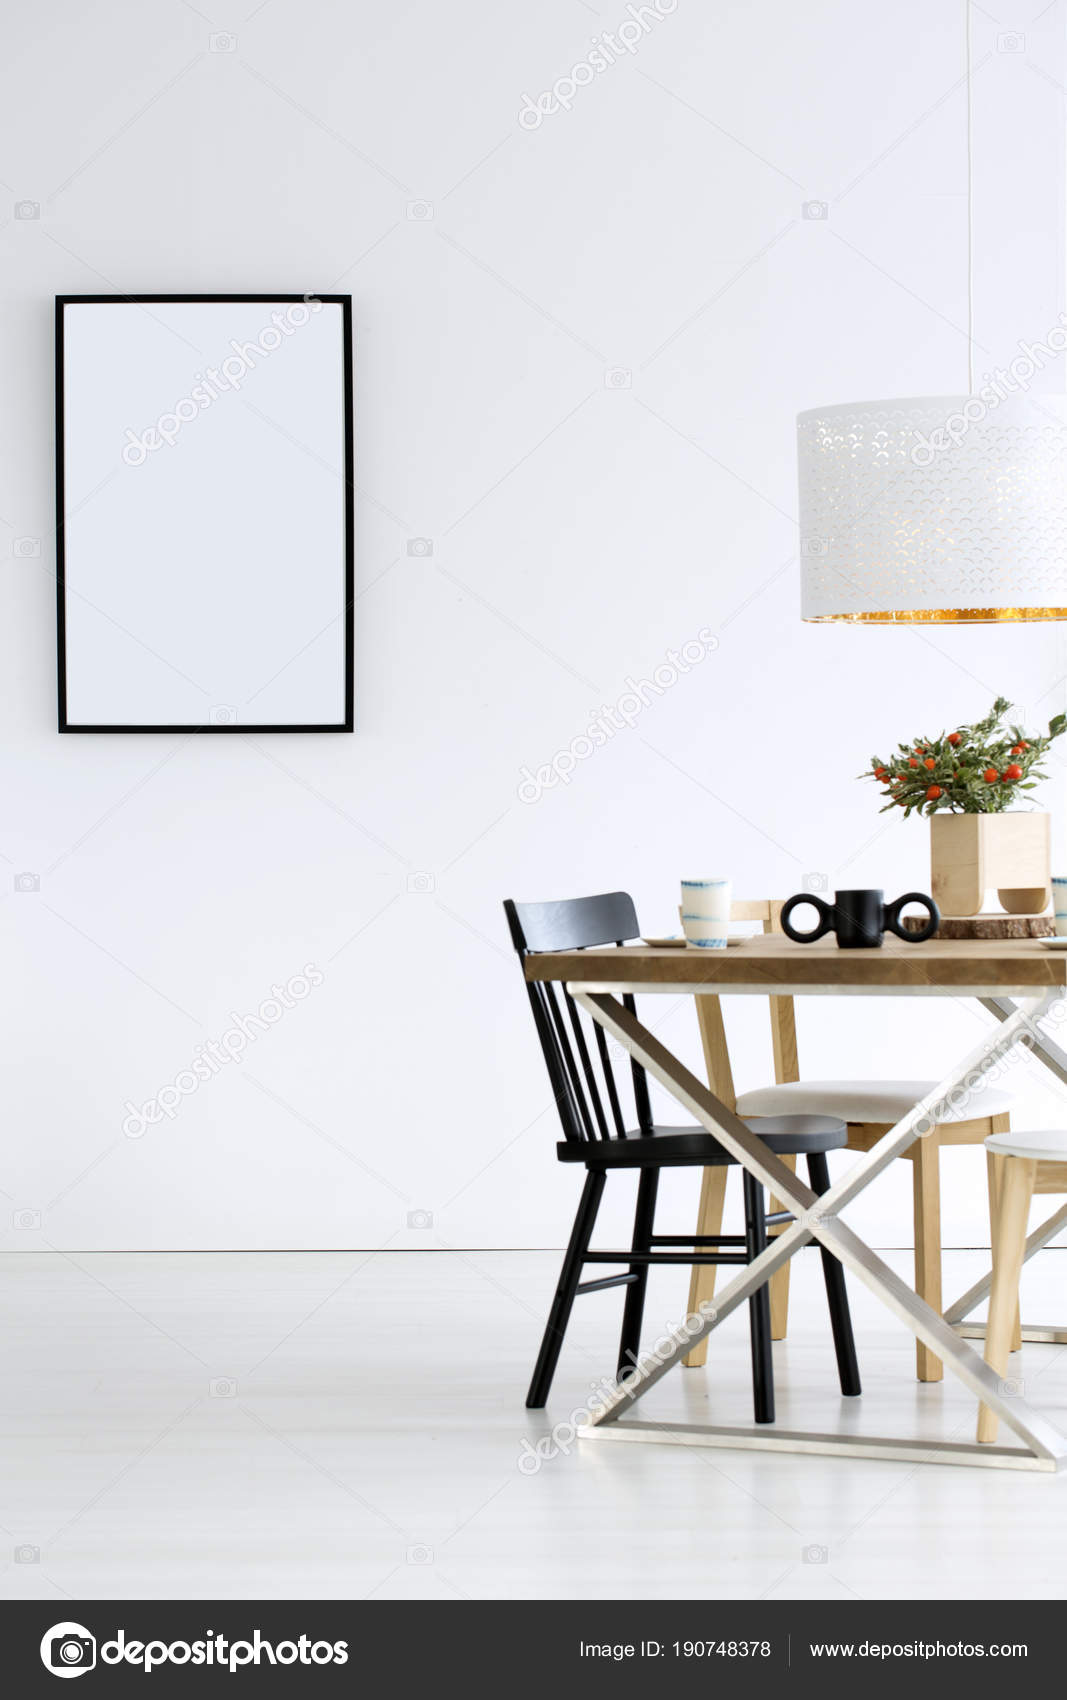 Black Chair At Table Under White Lamp In Minimalist Dining Room Interior  With Mockup Of Poster U2014 Photo By Photographee.eu